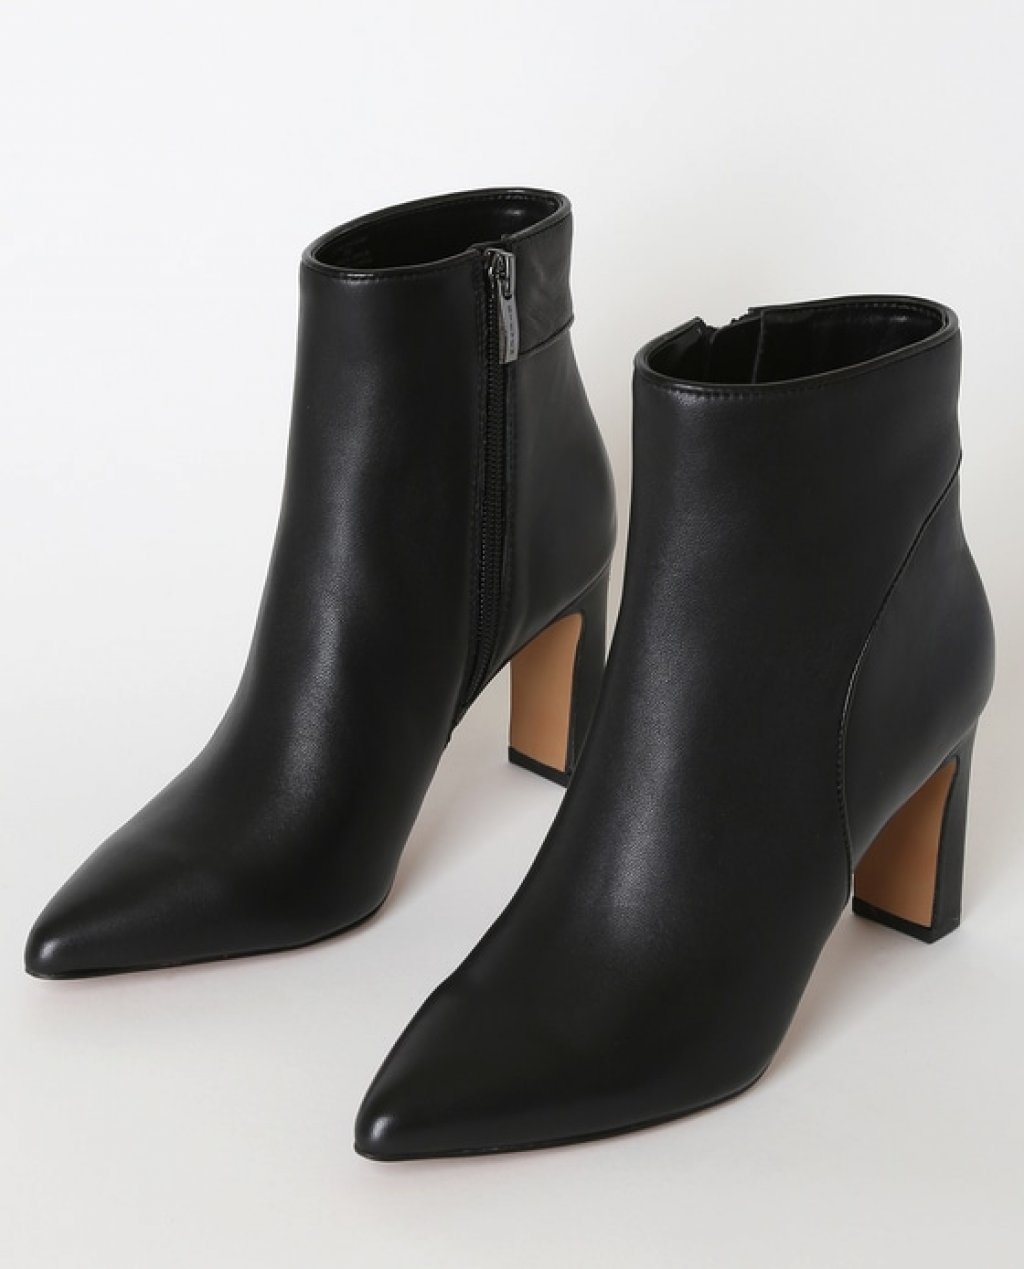 Jenn Black Leather Pointed-Toe Ankle Booties